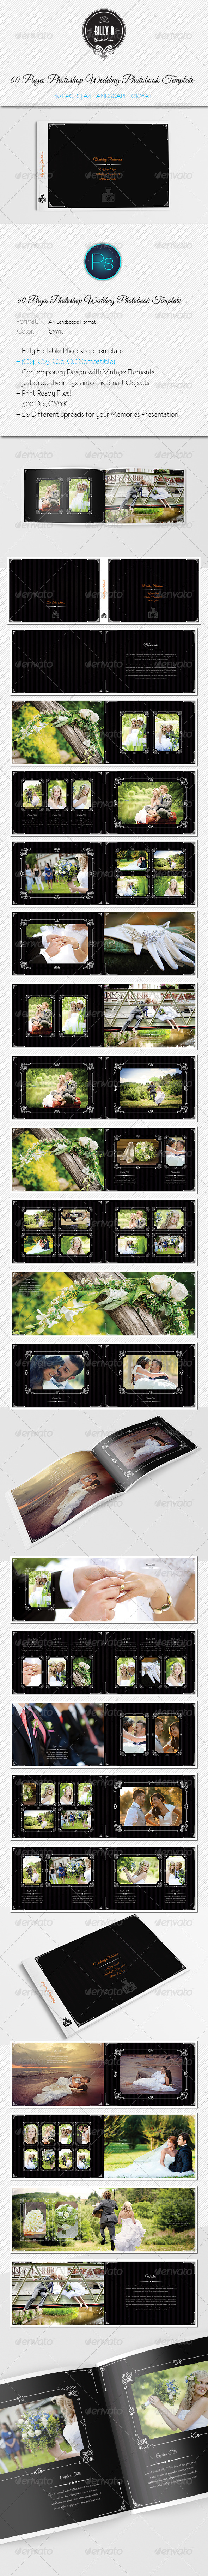 GraphicRiver 40 Pages Photoshop Wedding Photobook Template 8661523